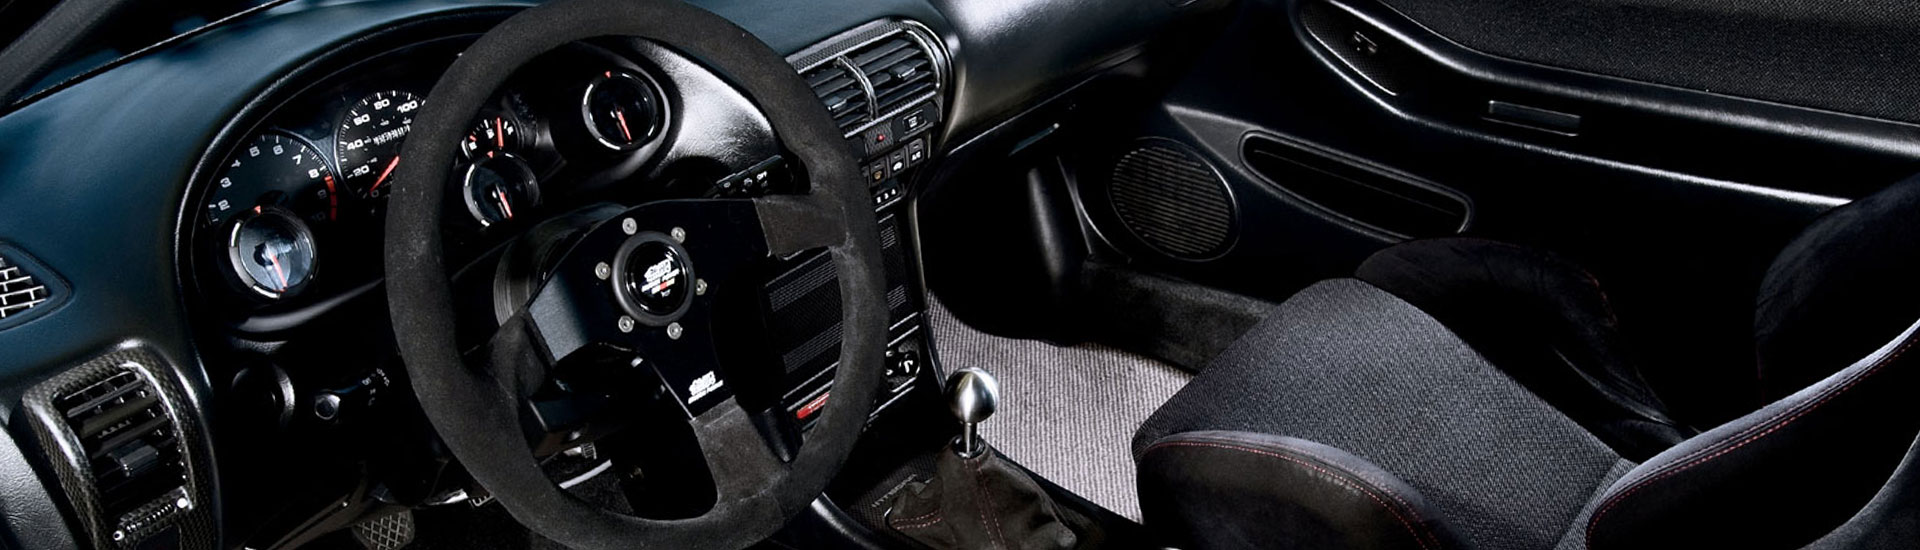 Acura Integra Custom Dash Kits